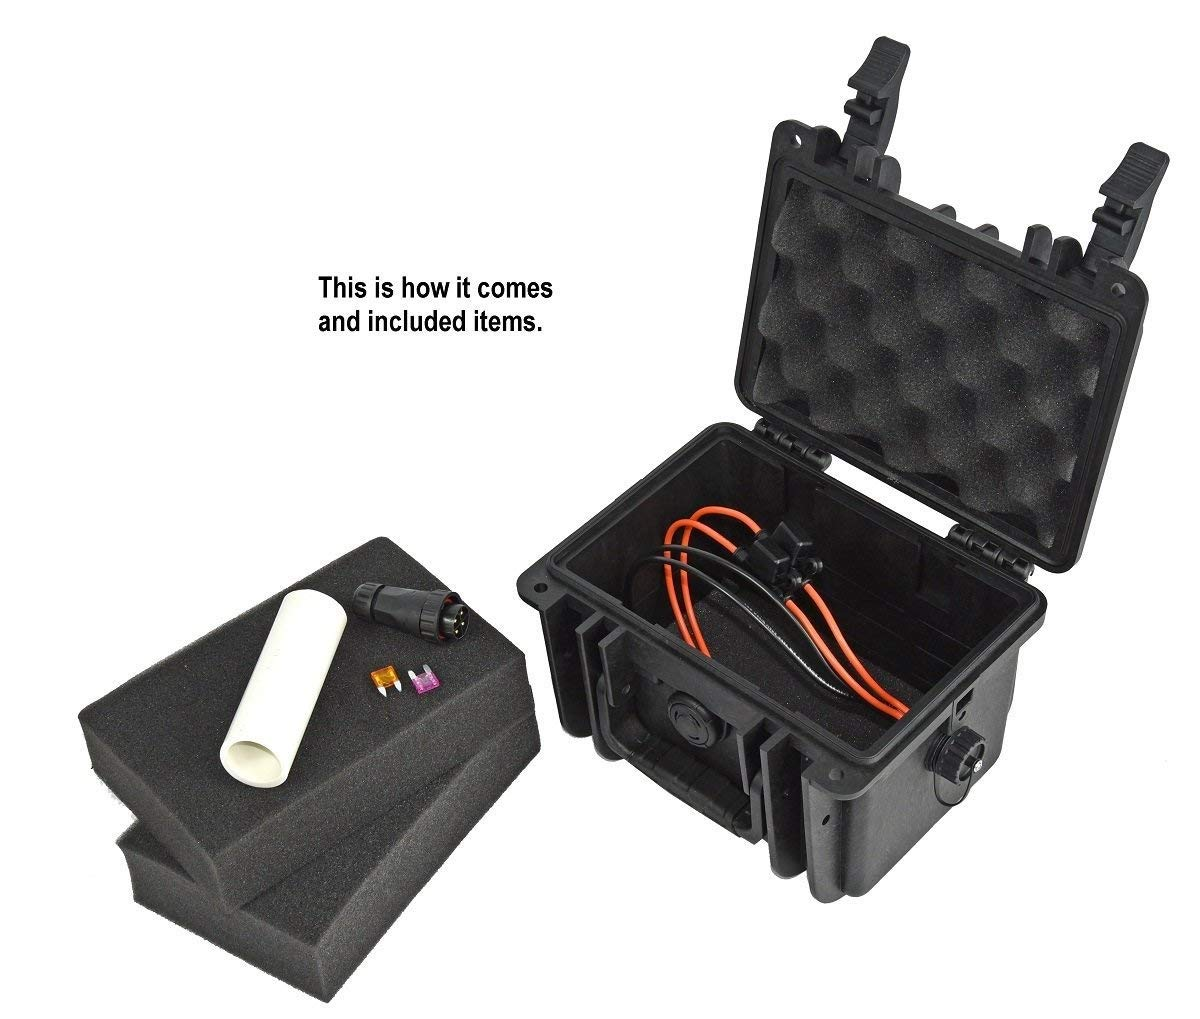 Elephant K100 Custom Made Kayak Battery Box Waterproof Wiring Diagram Floating Case For Powering Gps Fish Finders Led Lights And Much More Sports